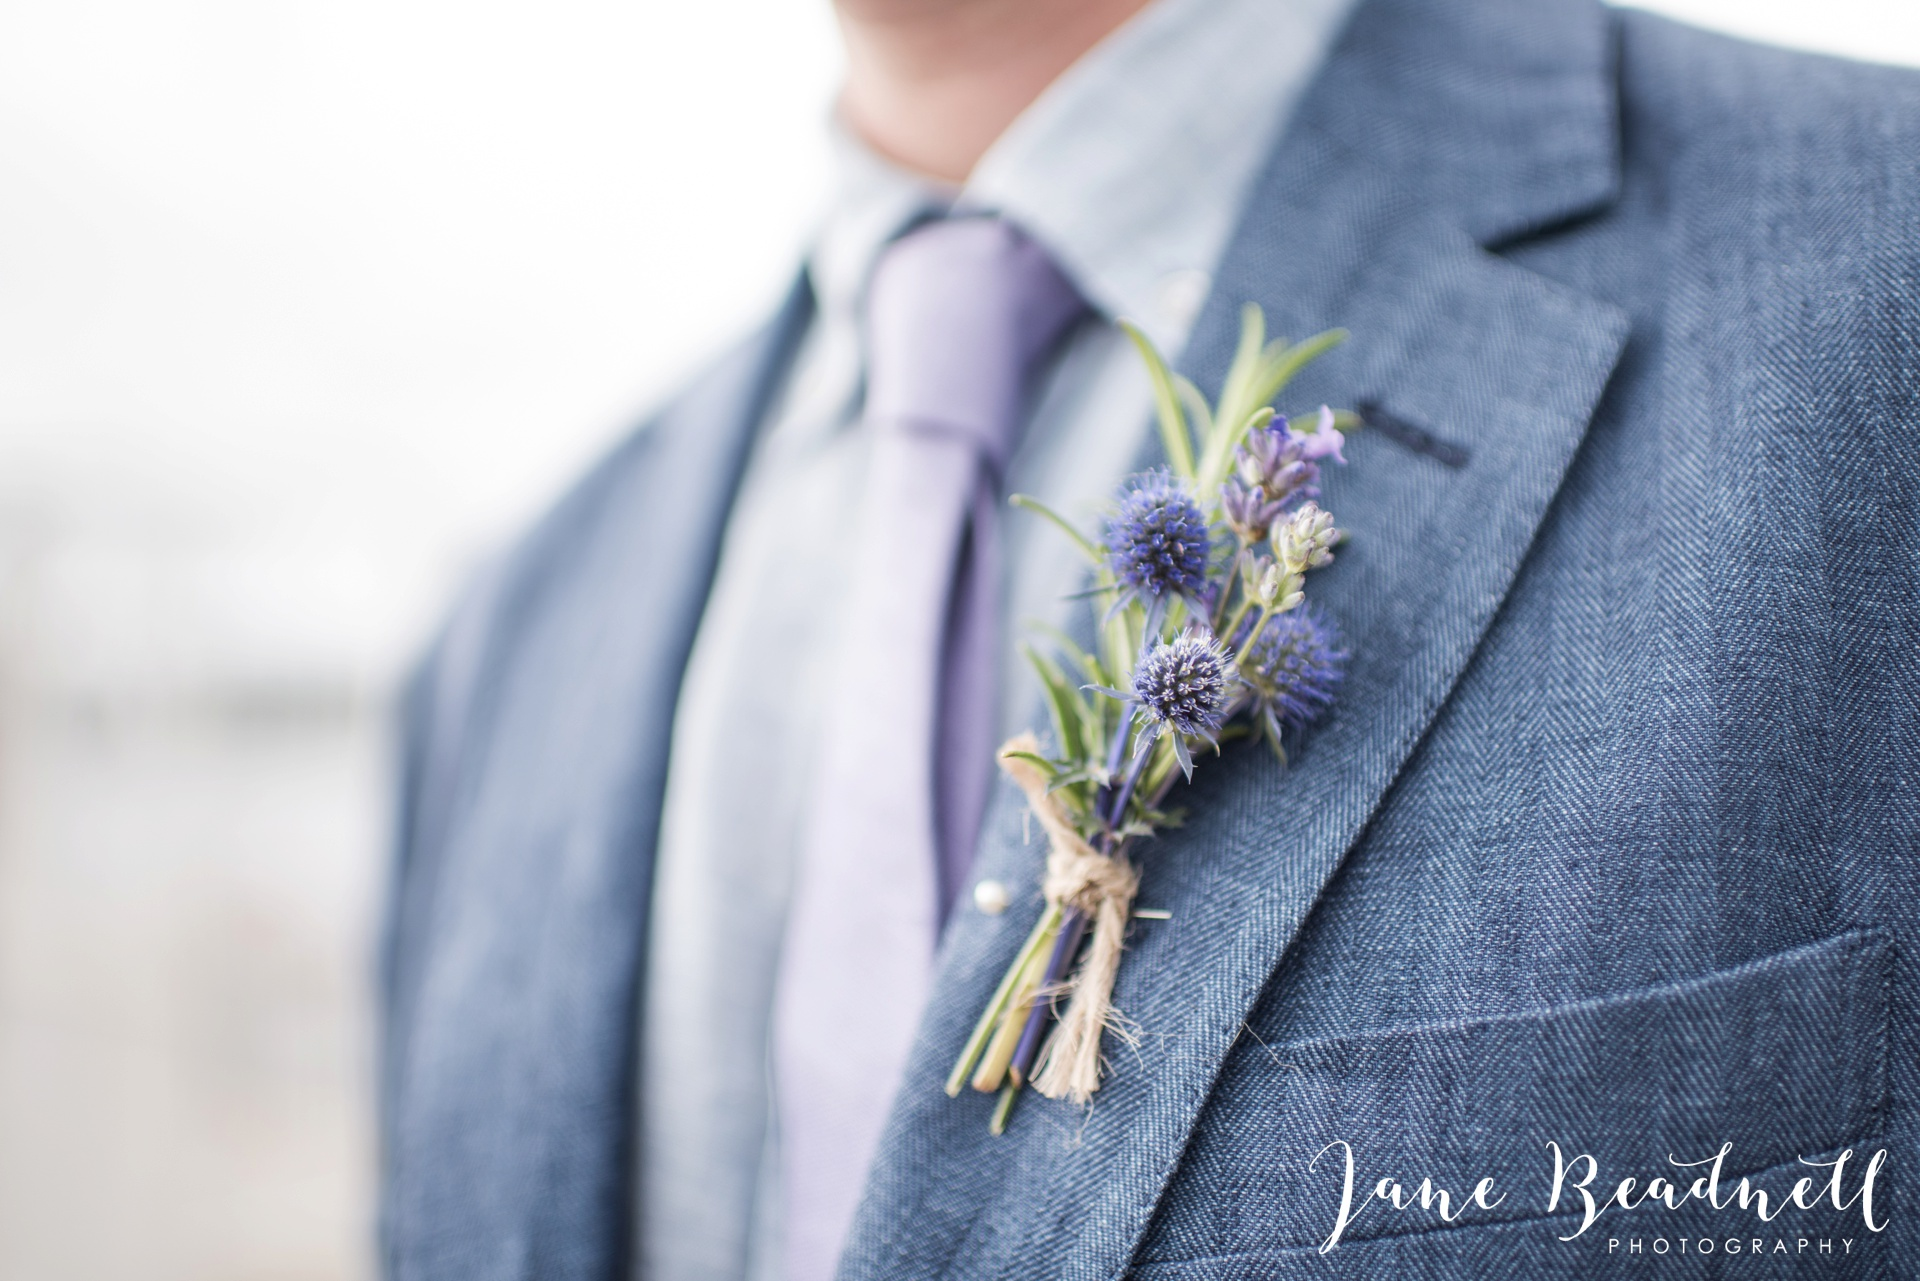 Jane Beadnell fine art wedding photographer Lake Ullswater Lake District_0001